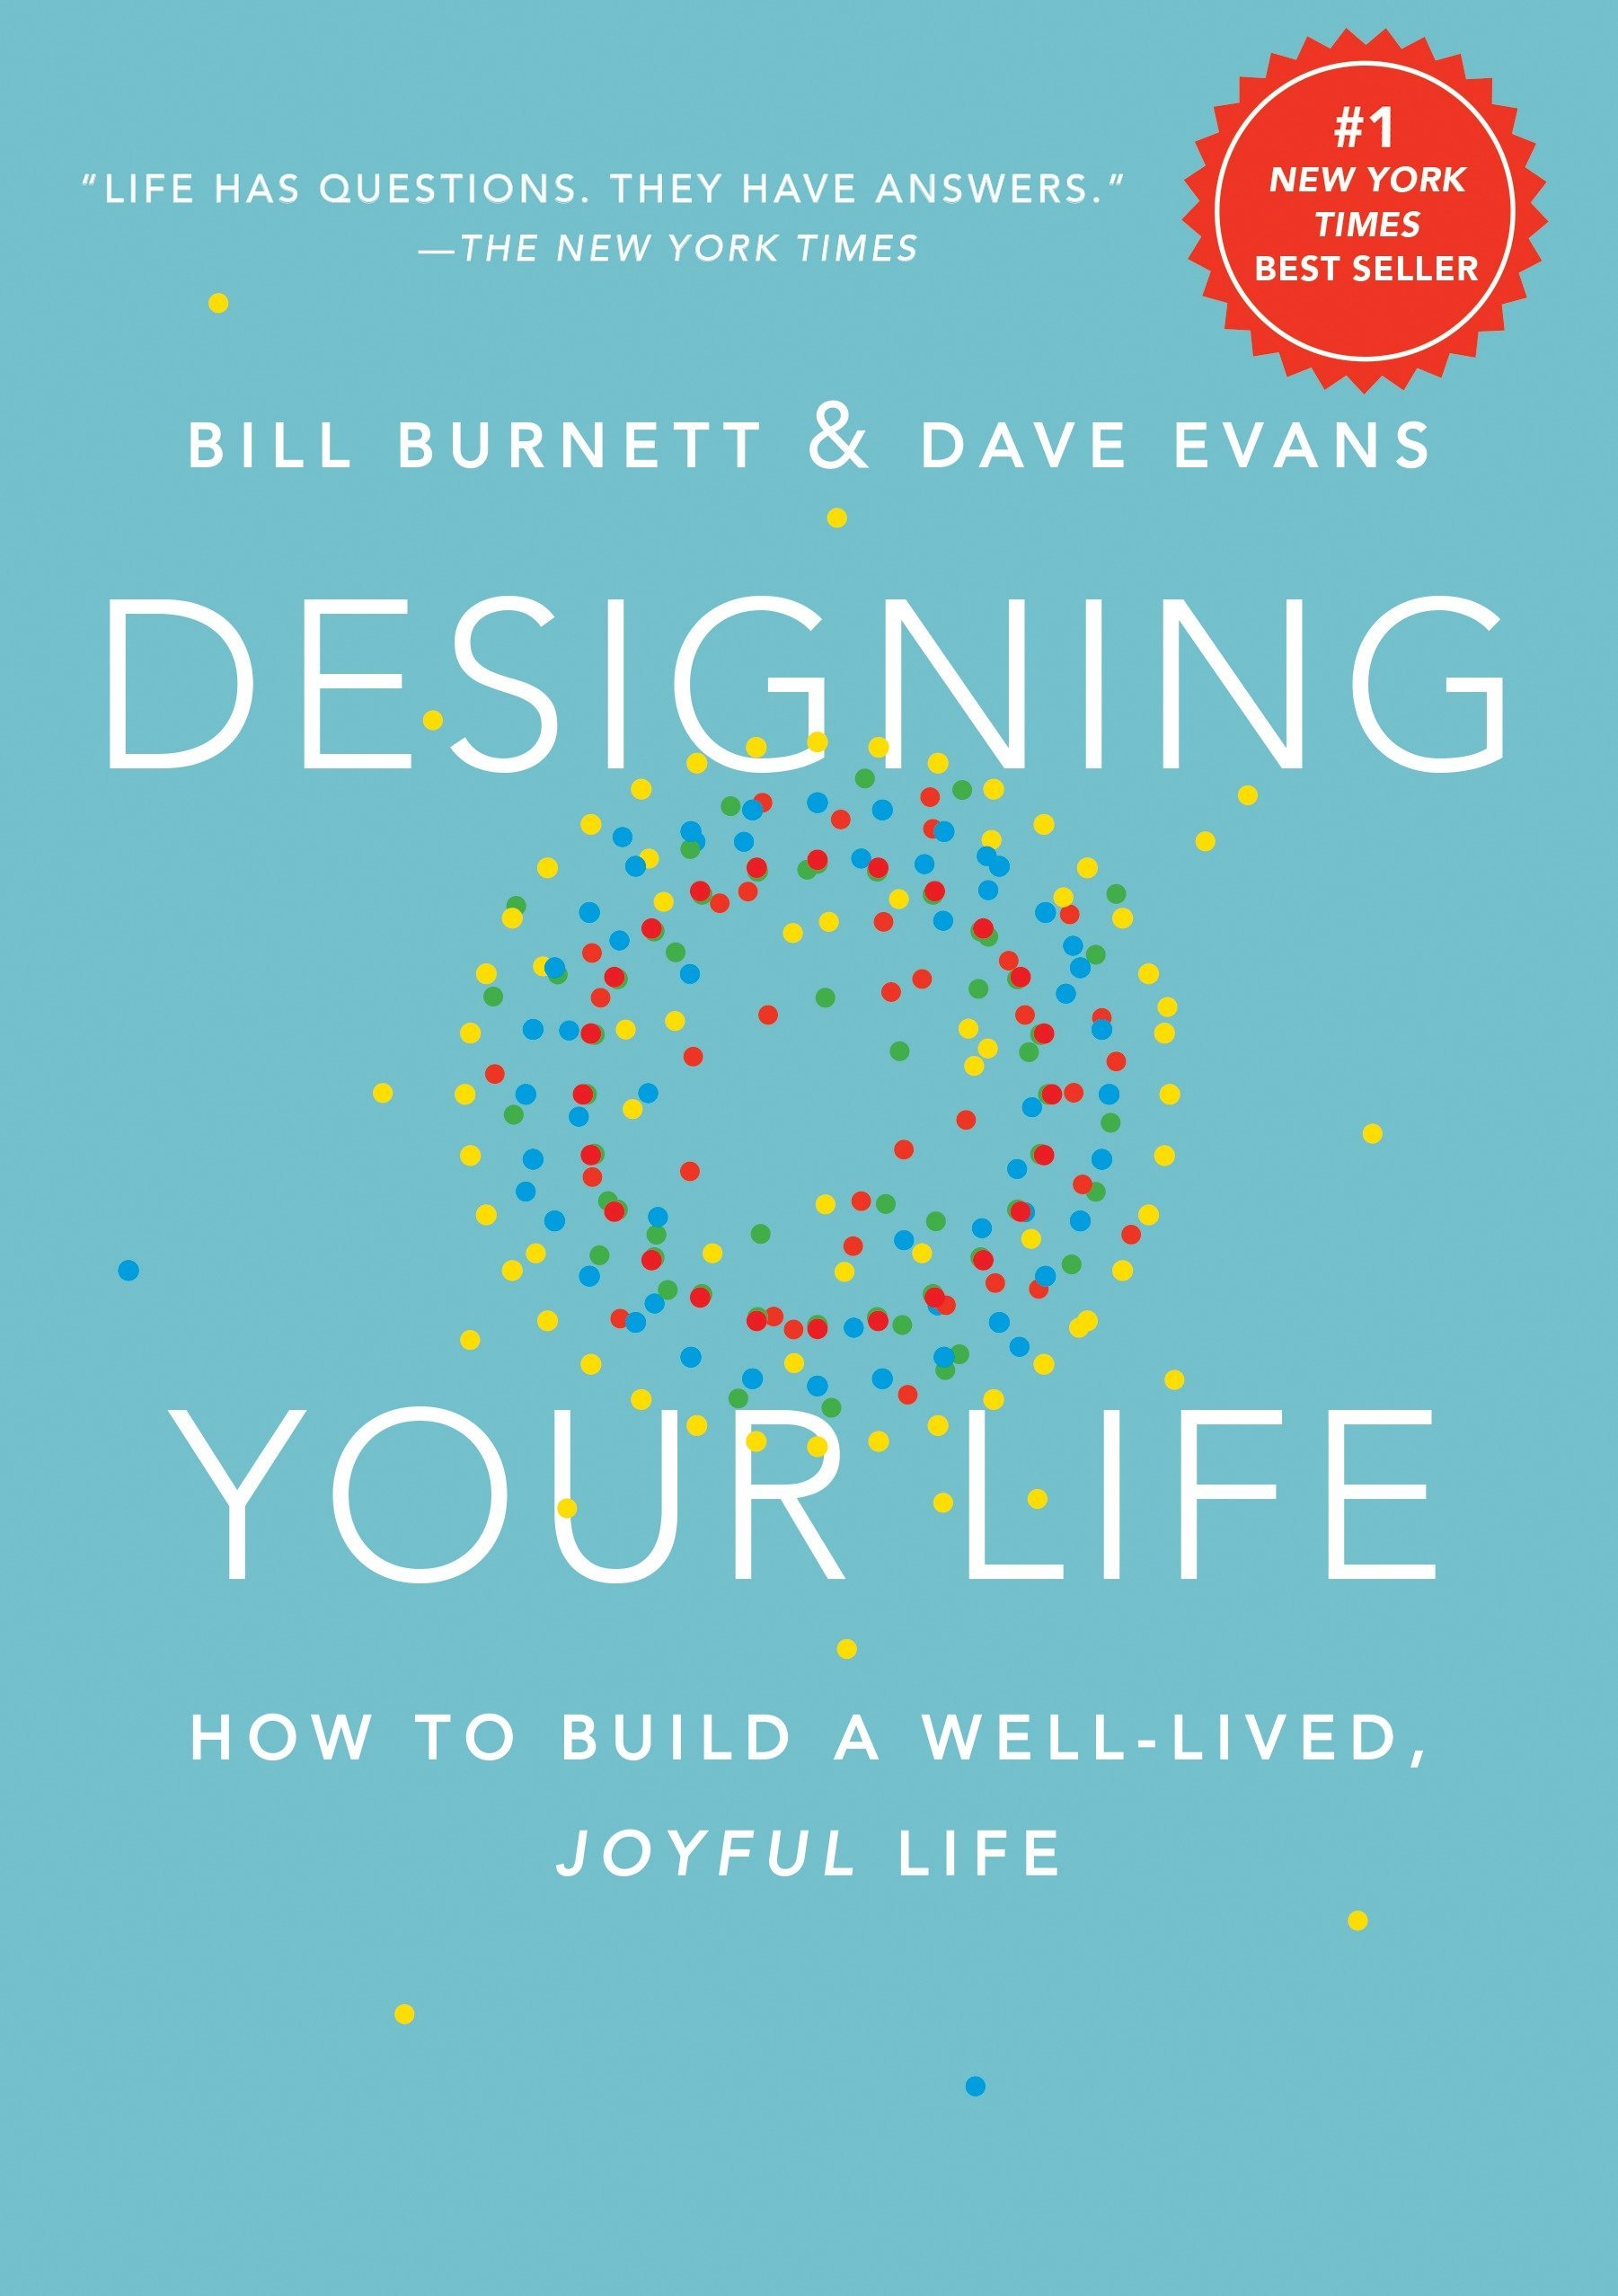 Designing Your Life: How to Build a Well-Lived, Joyful Life (Bill Burnett & Dave Evans)